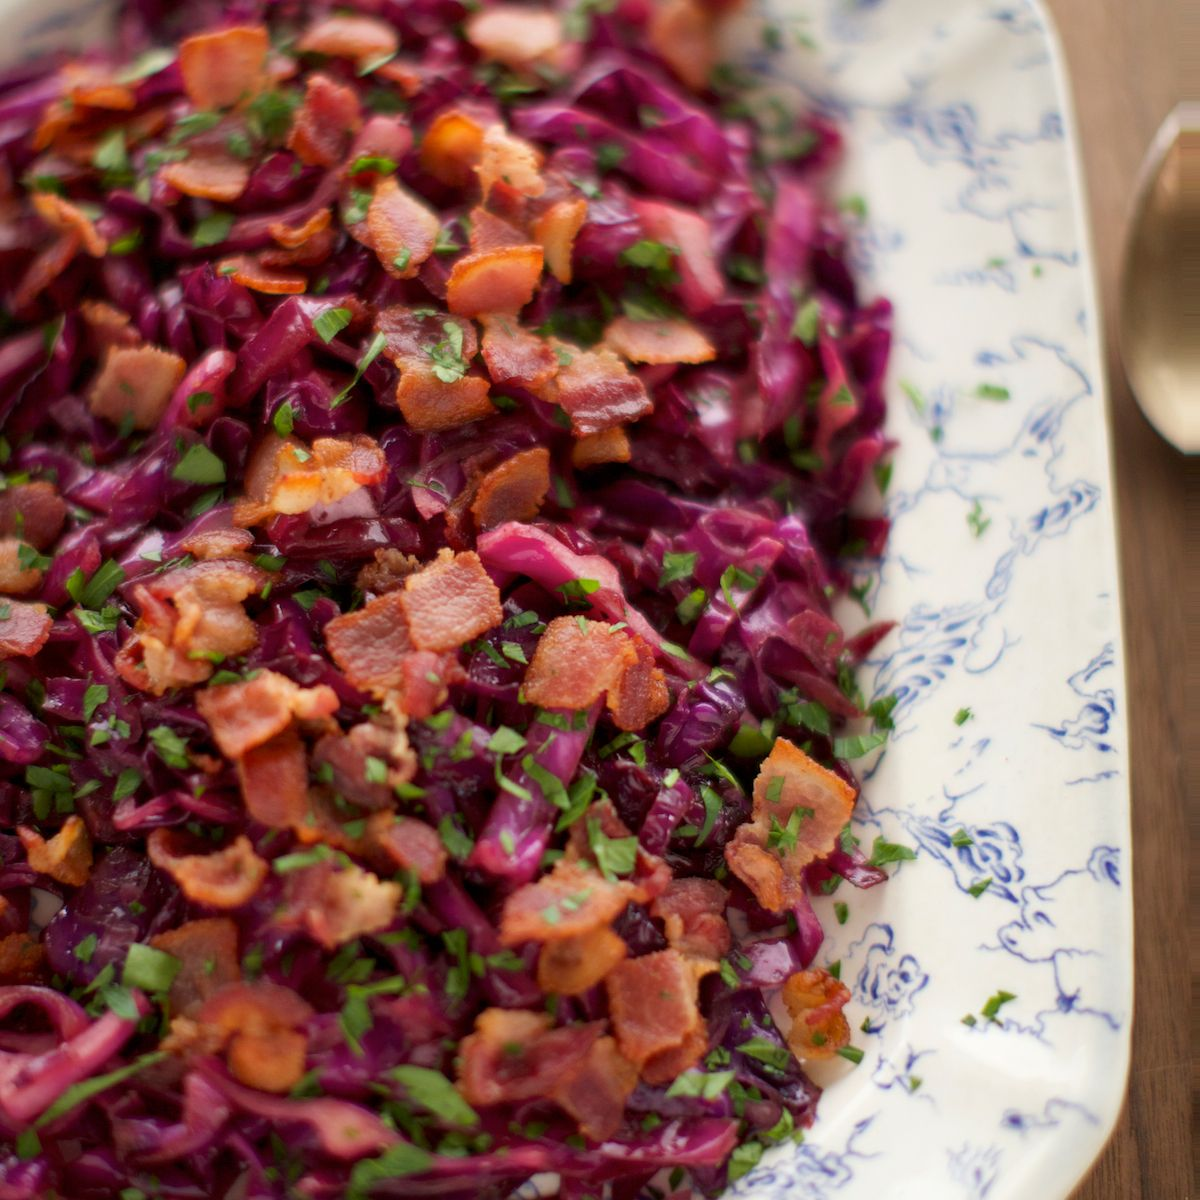 Sauteed Red Cabbage With Bacon Recipe Cabbage And Bacon Sauteed Red Cabbage Red Cabbage Recipes